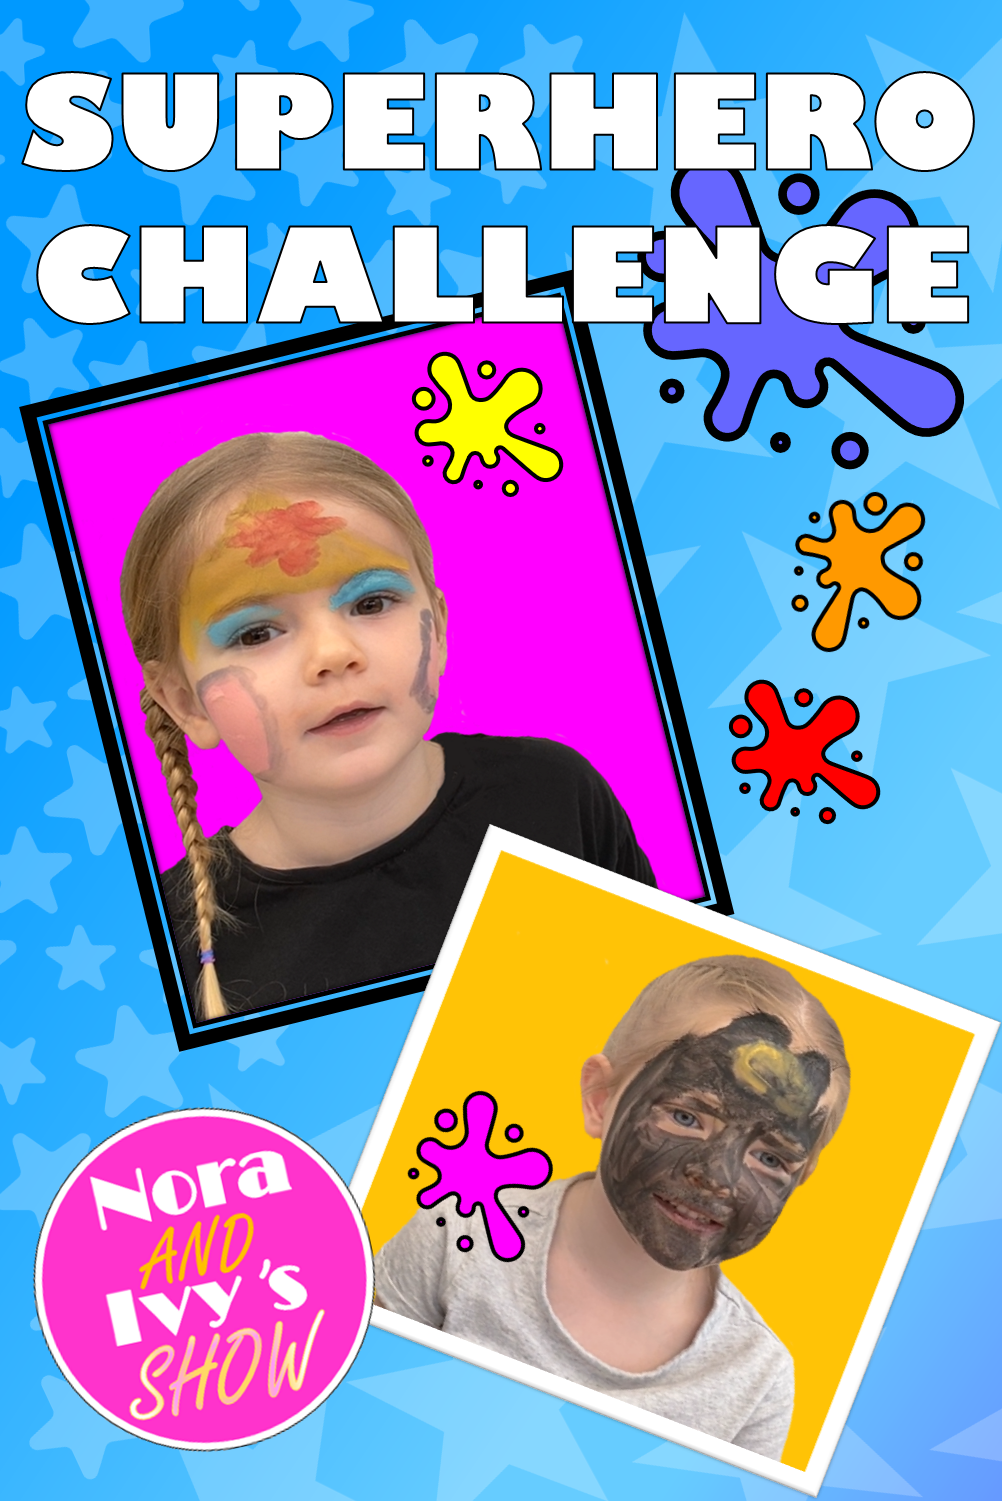 Face Painting Challenge | Welk superheldenkarakter zijn ze?,  #CHALLENGE #Face #facepaintingideasforkids #Painting #superheldenkarakter #Welk #zijn